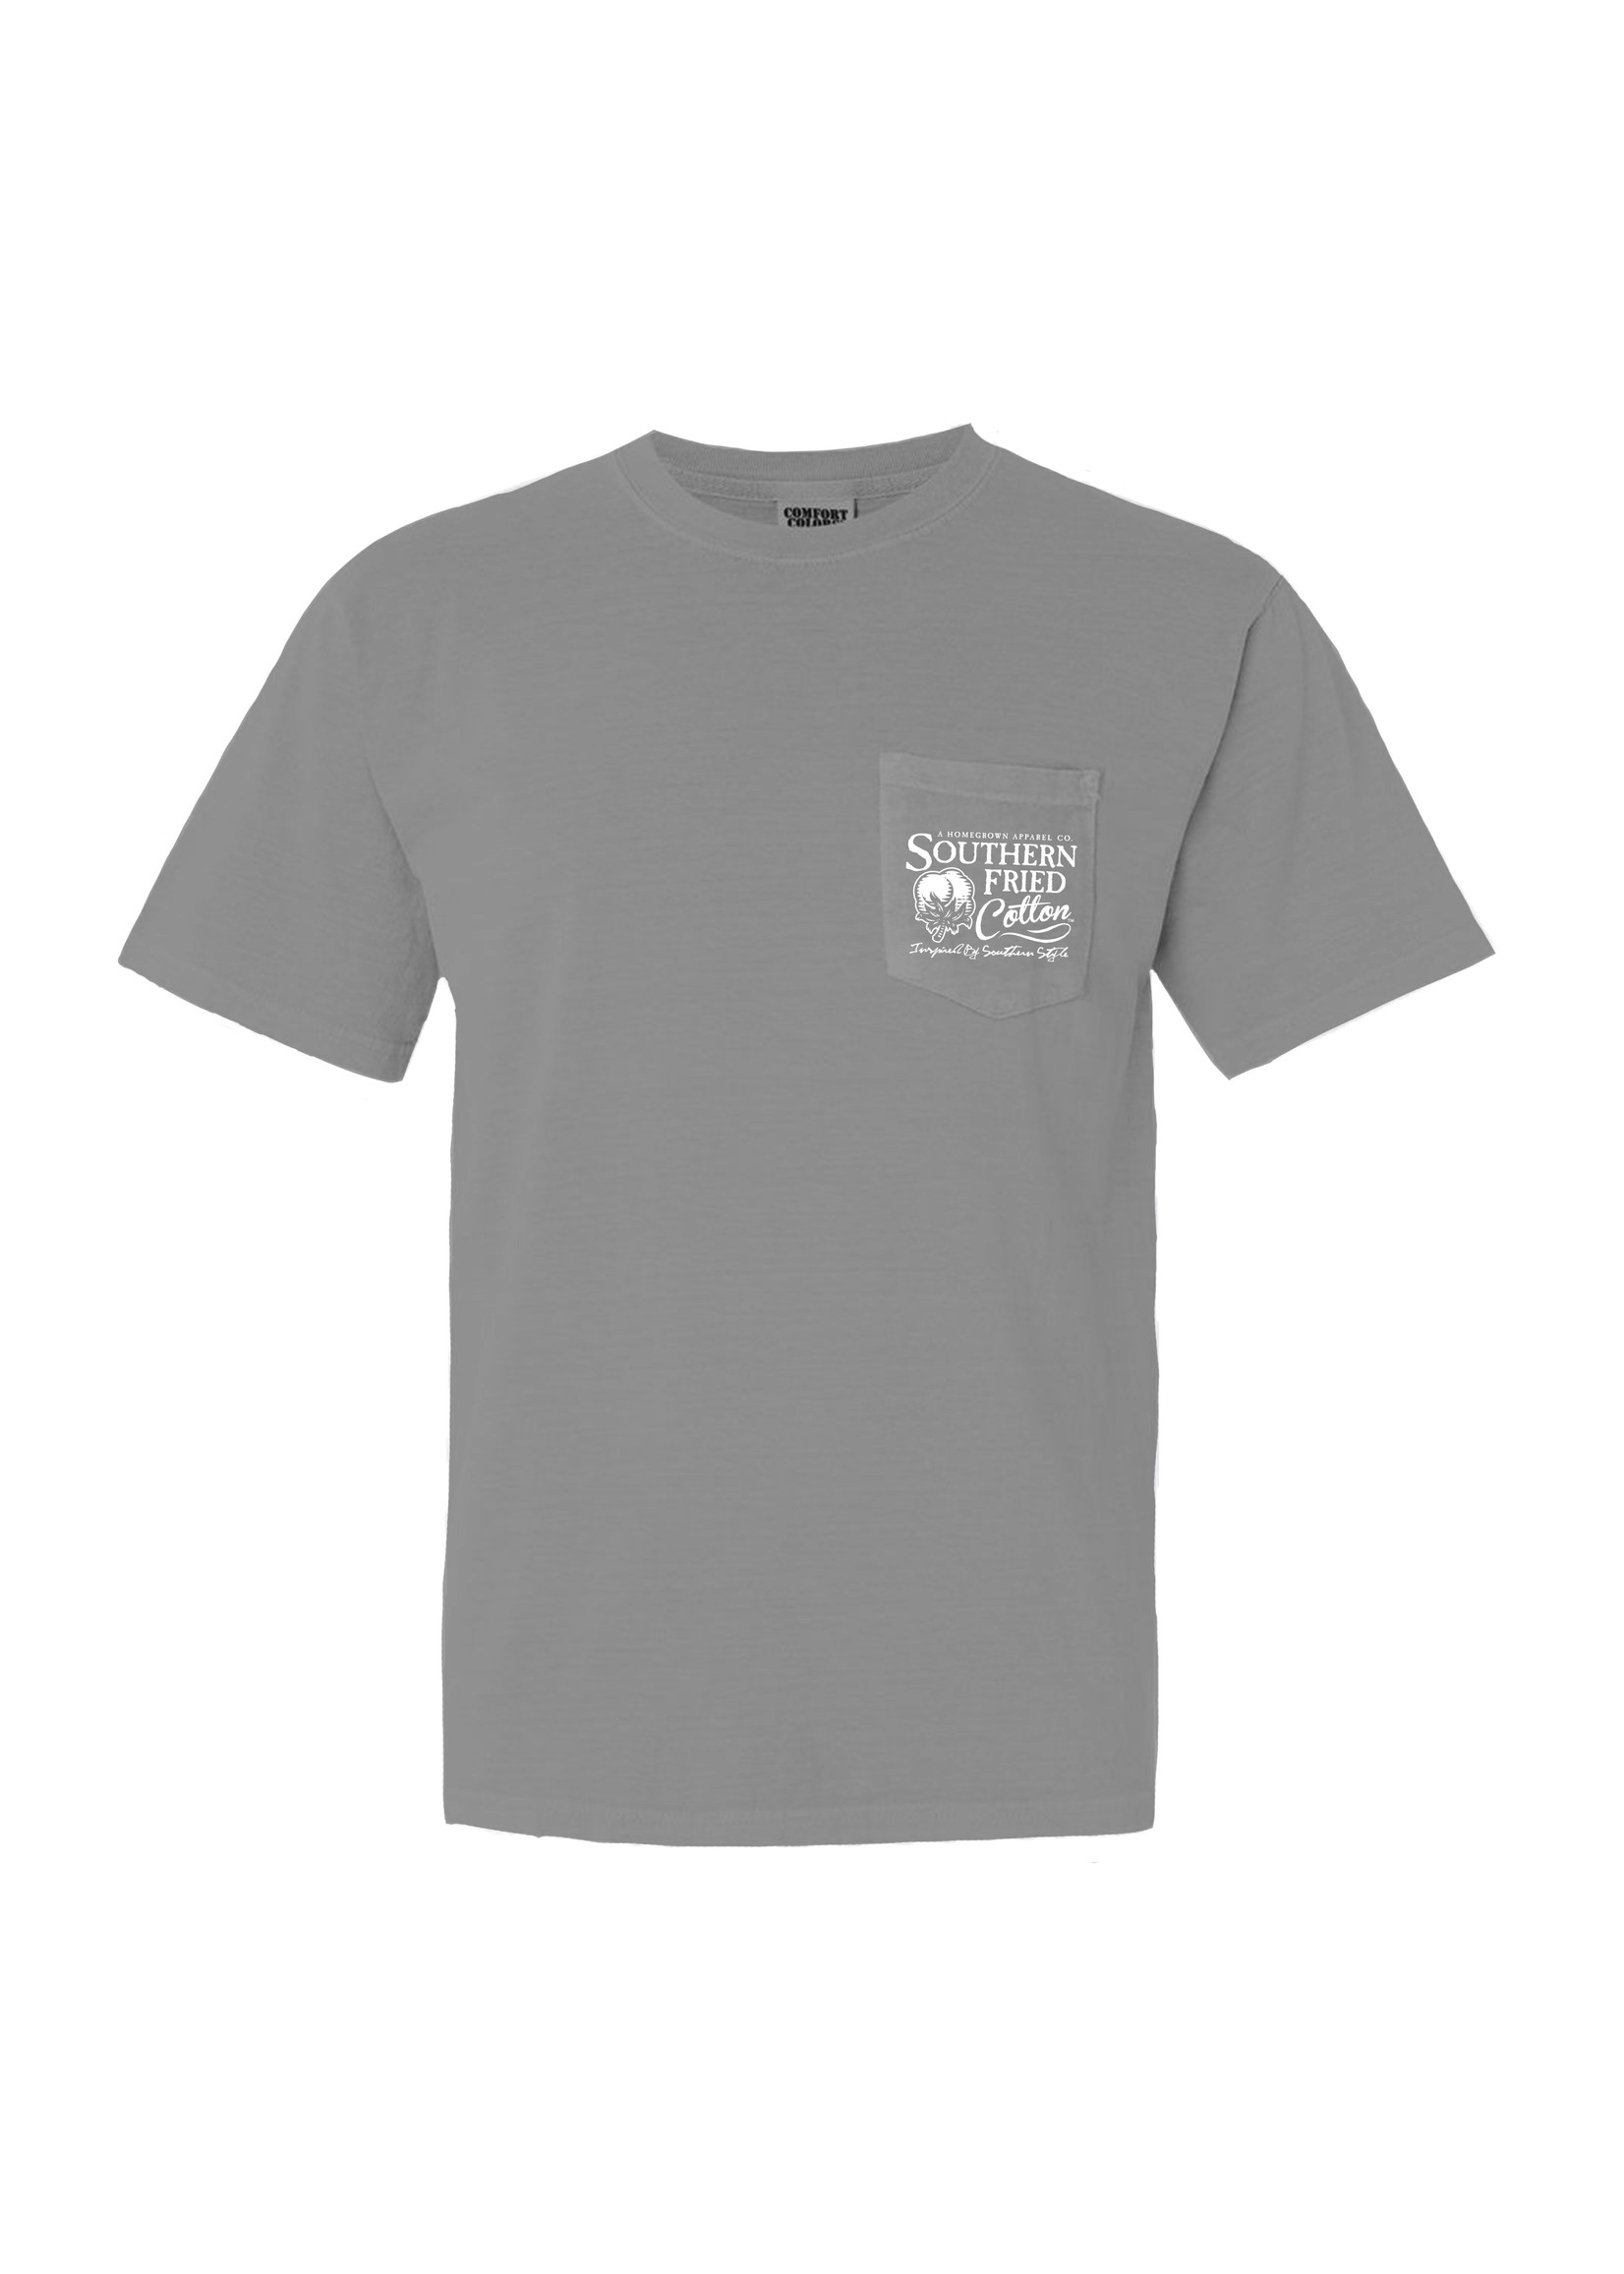 Southern Fried Cotton In The Tall Grass Short Sleeve T-Shirt